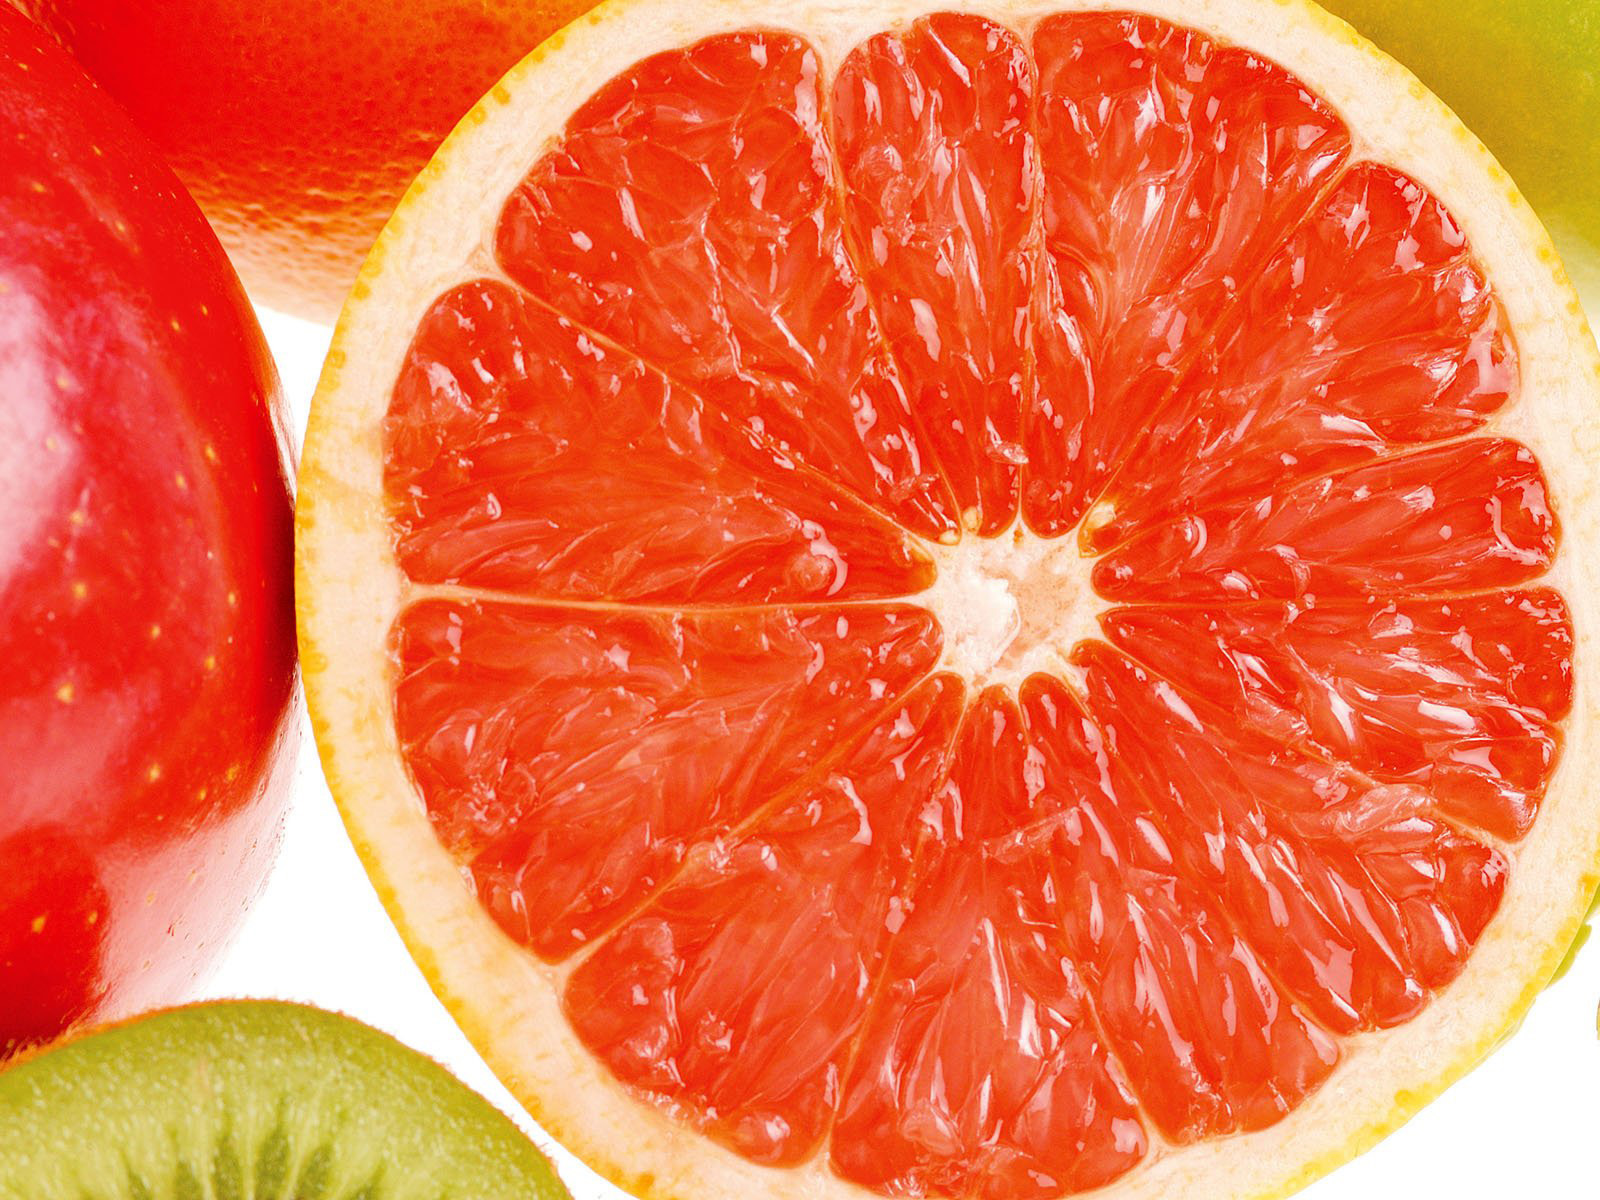 Juicy and bright wallpaper, the picture shows a grapefruit.